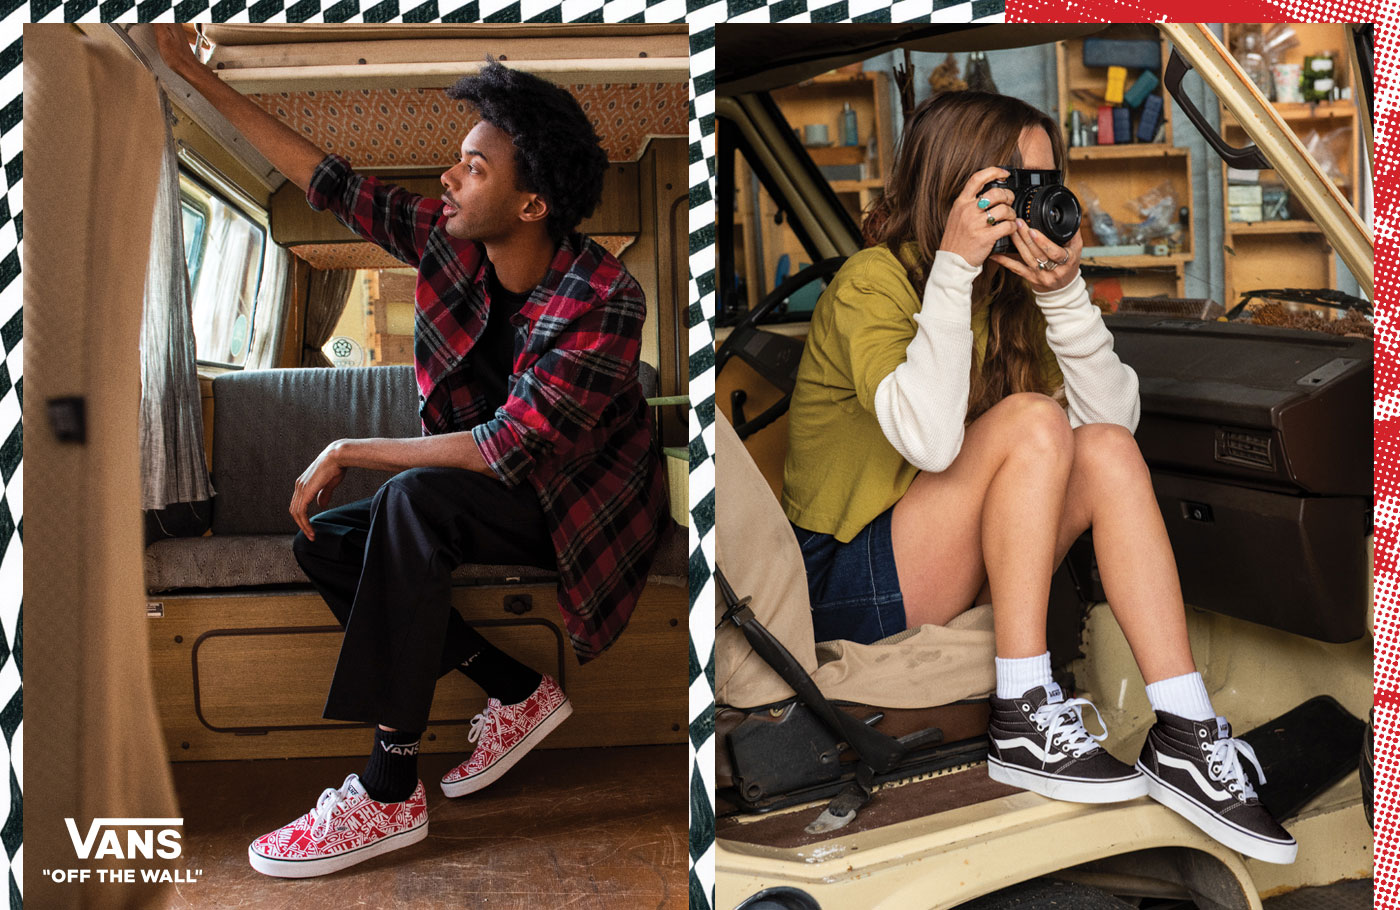 Vans Shoes, Sneakers & Skate Shoes | Off Broadway Shoes